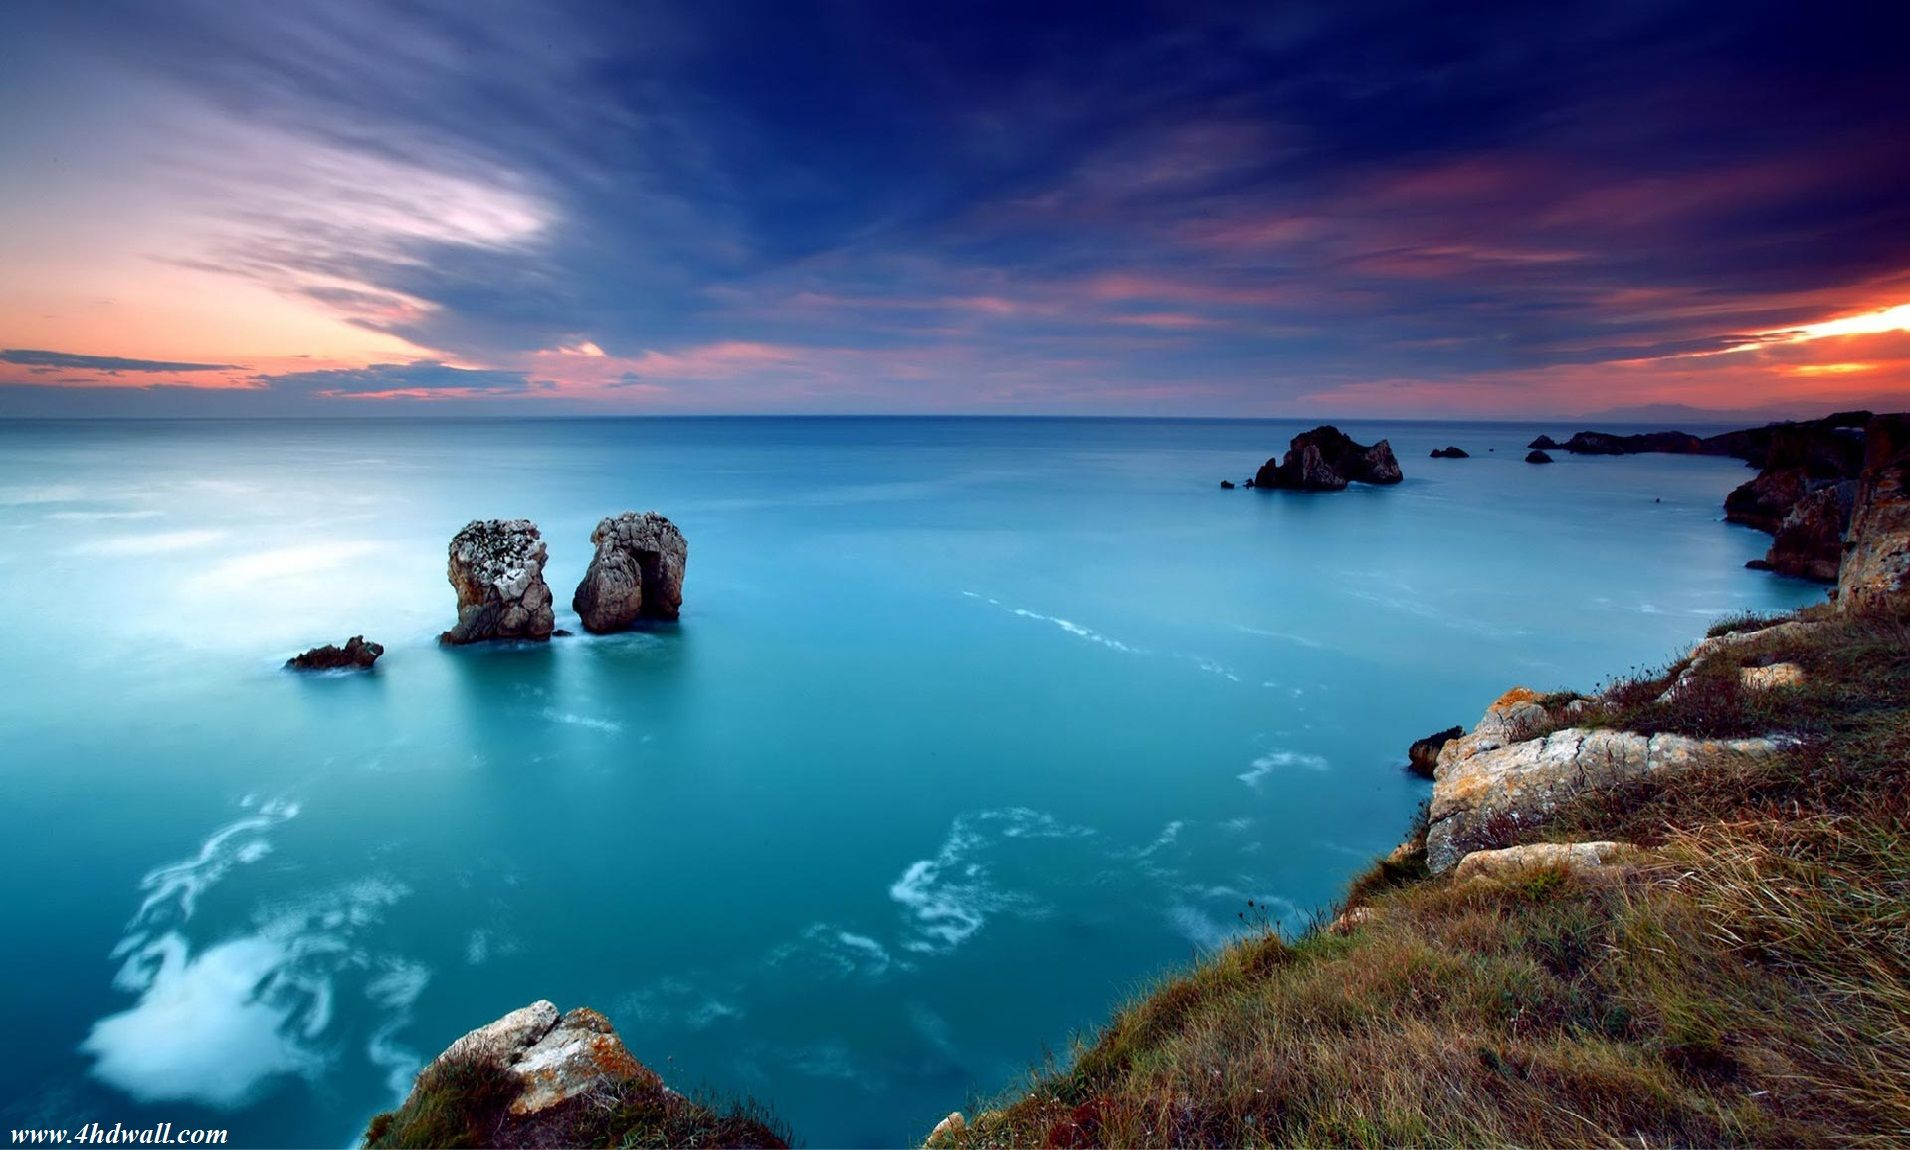 Hd wallpaper nature for mobile - Find This Pin And More On Best Games Wallpapers Beautiful Hd Wallpapers Of Nature For Mobile